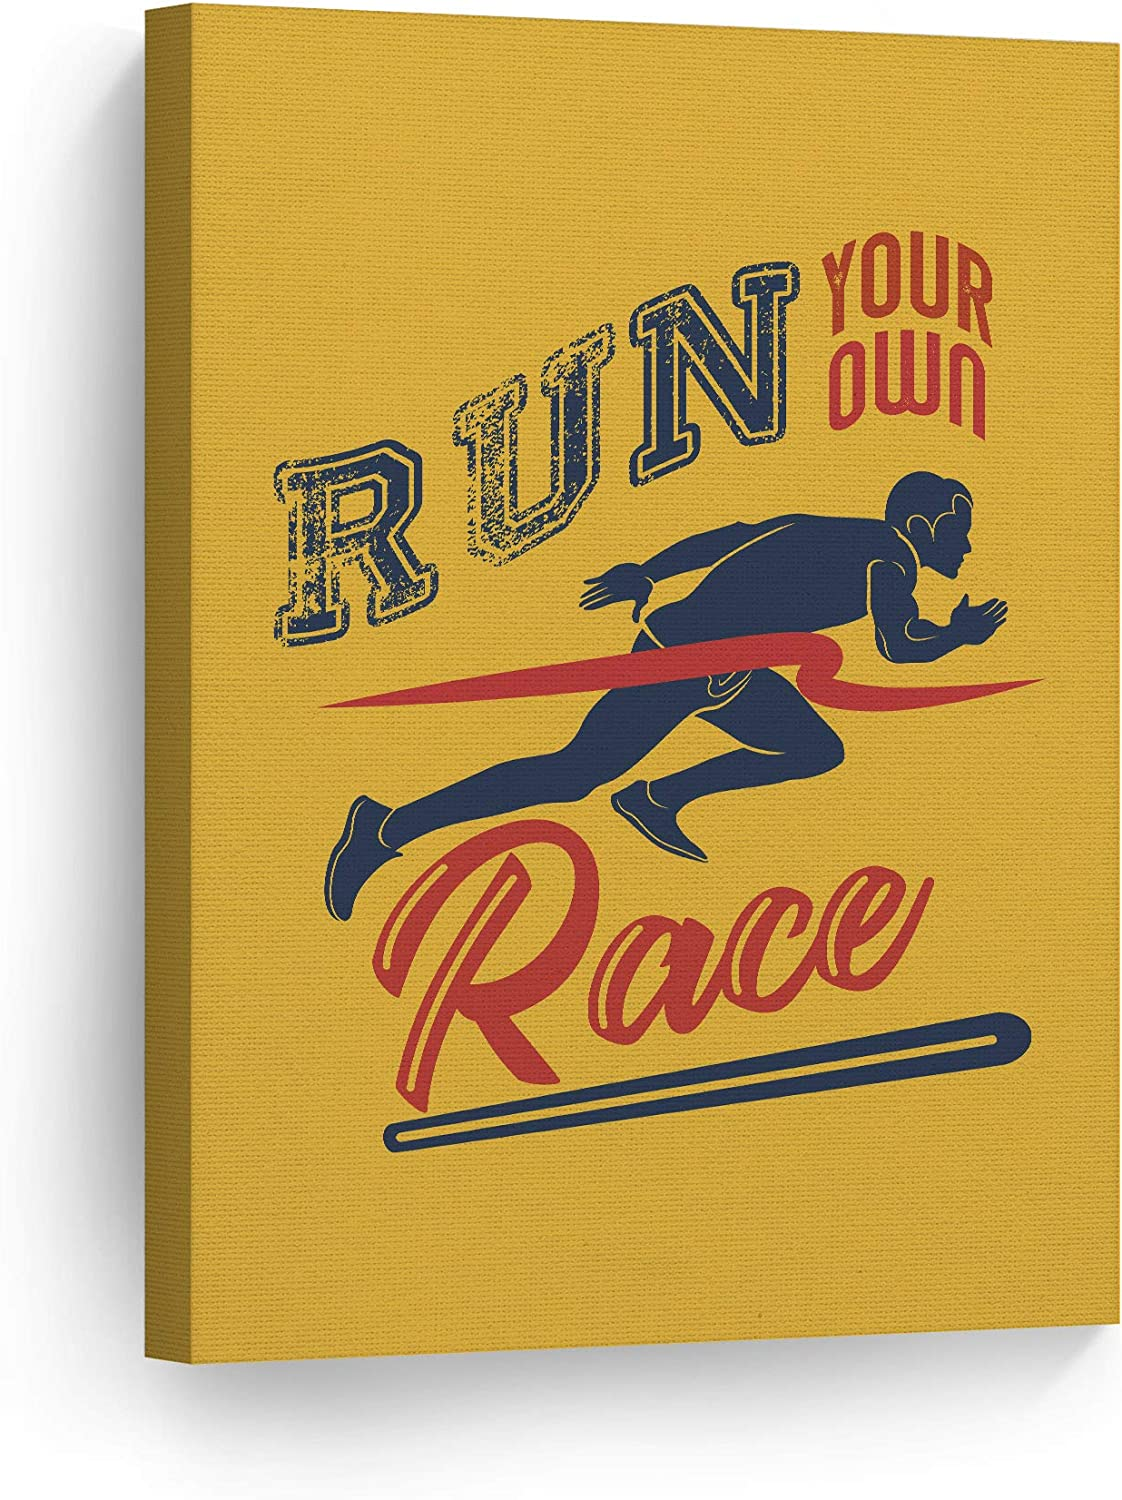 Amazon Com Smile Art Design Run Your Own Race Inspiring Quote Running Jogging Motivational Canvas Wall Art Inspirational Wall Art Entrepreneur Quote Print Modern Office Decor Artwork Gift Ready To Hang 12x8 Posters